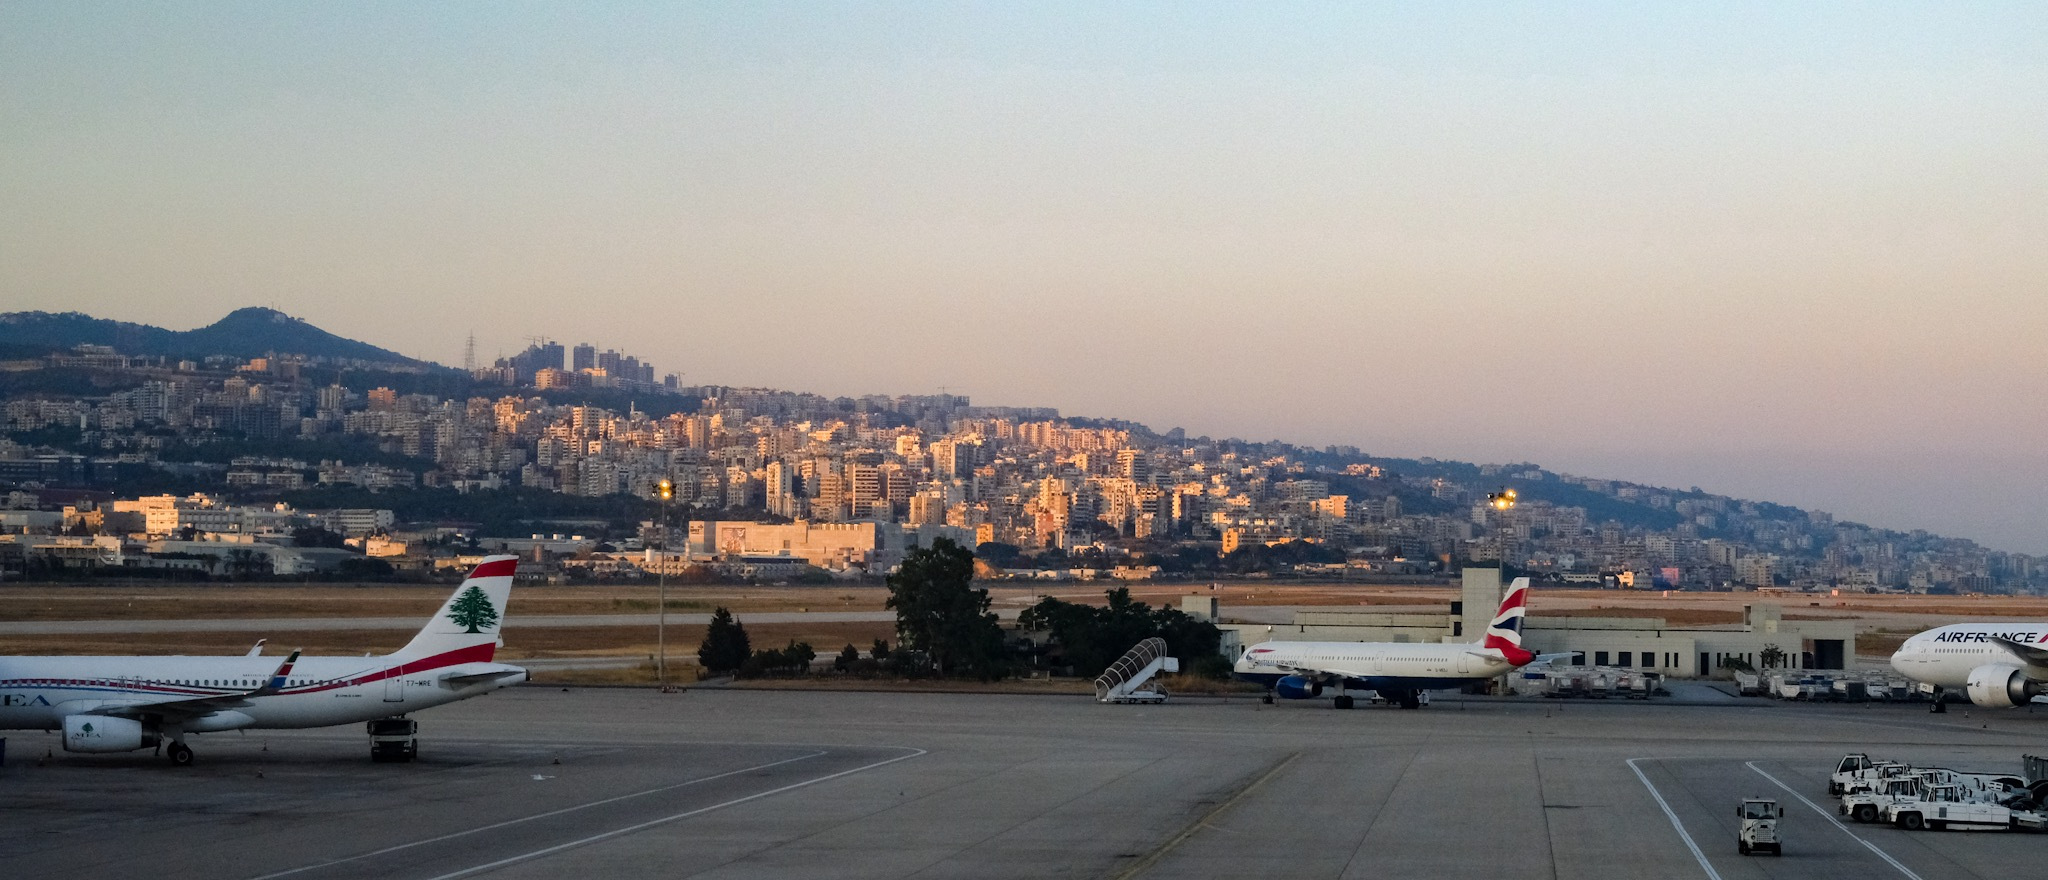 Beirut Airport is the only way to get to Mejdlaya